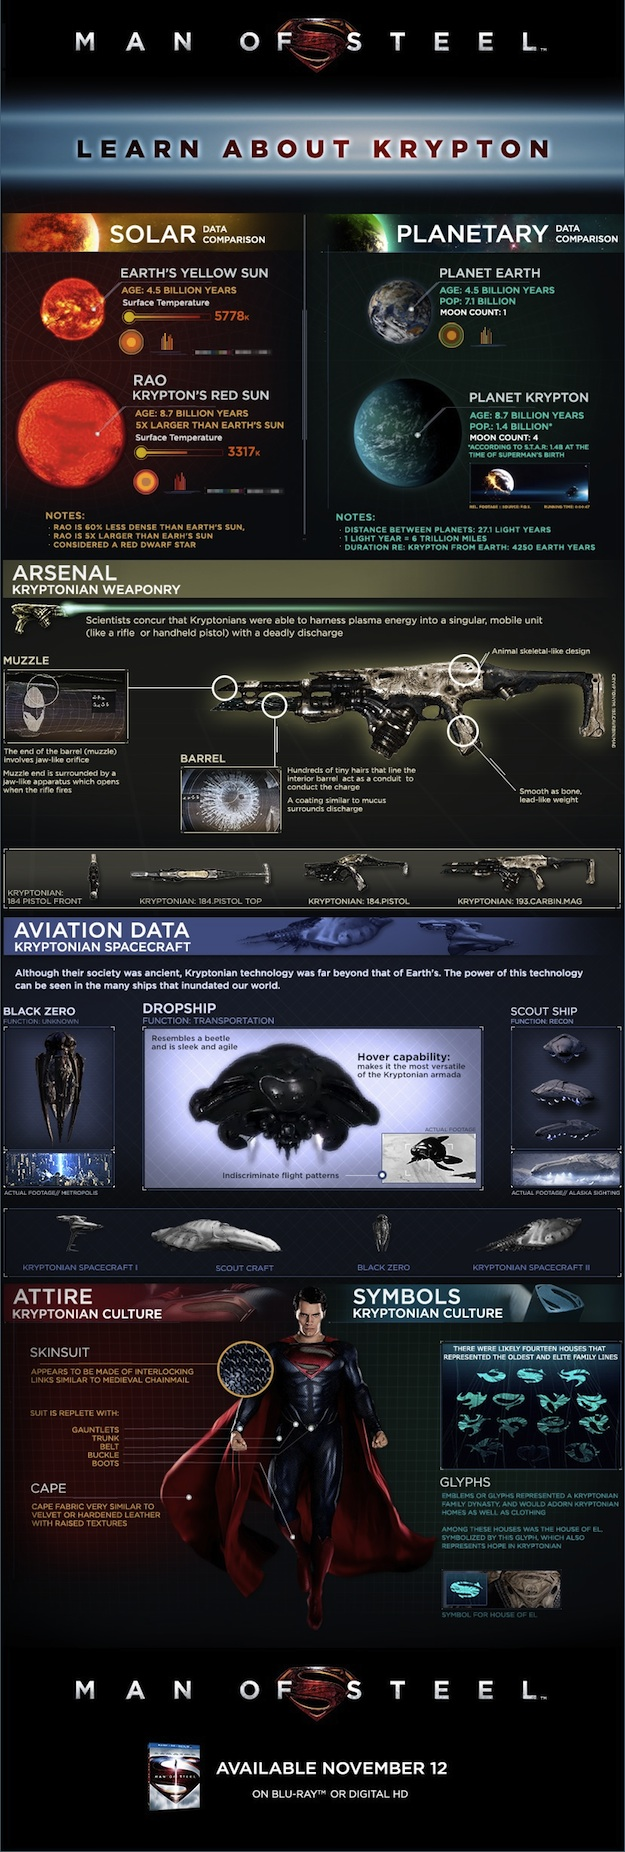 Krypton Explained with a Man of Steel Infographic